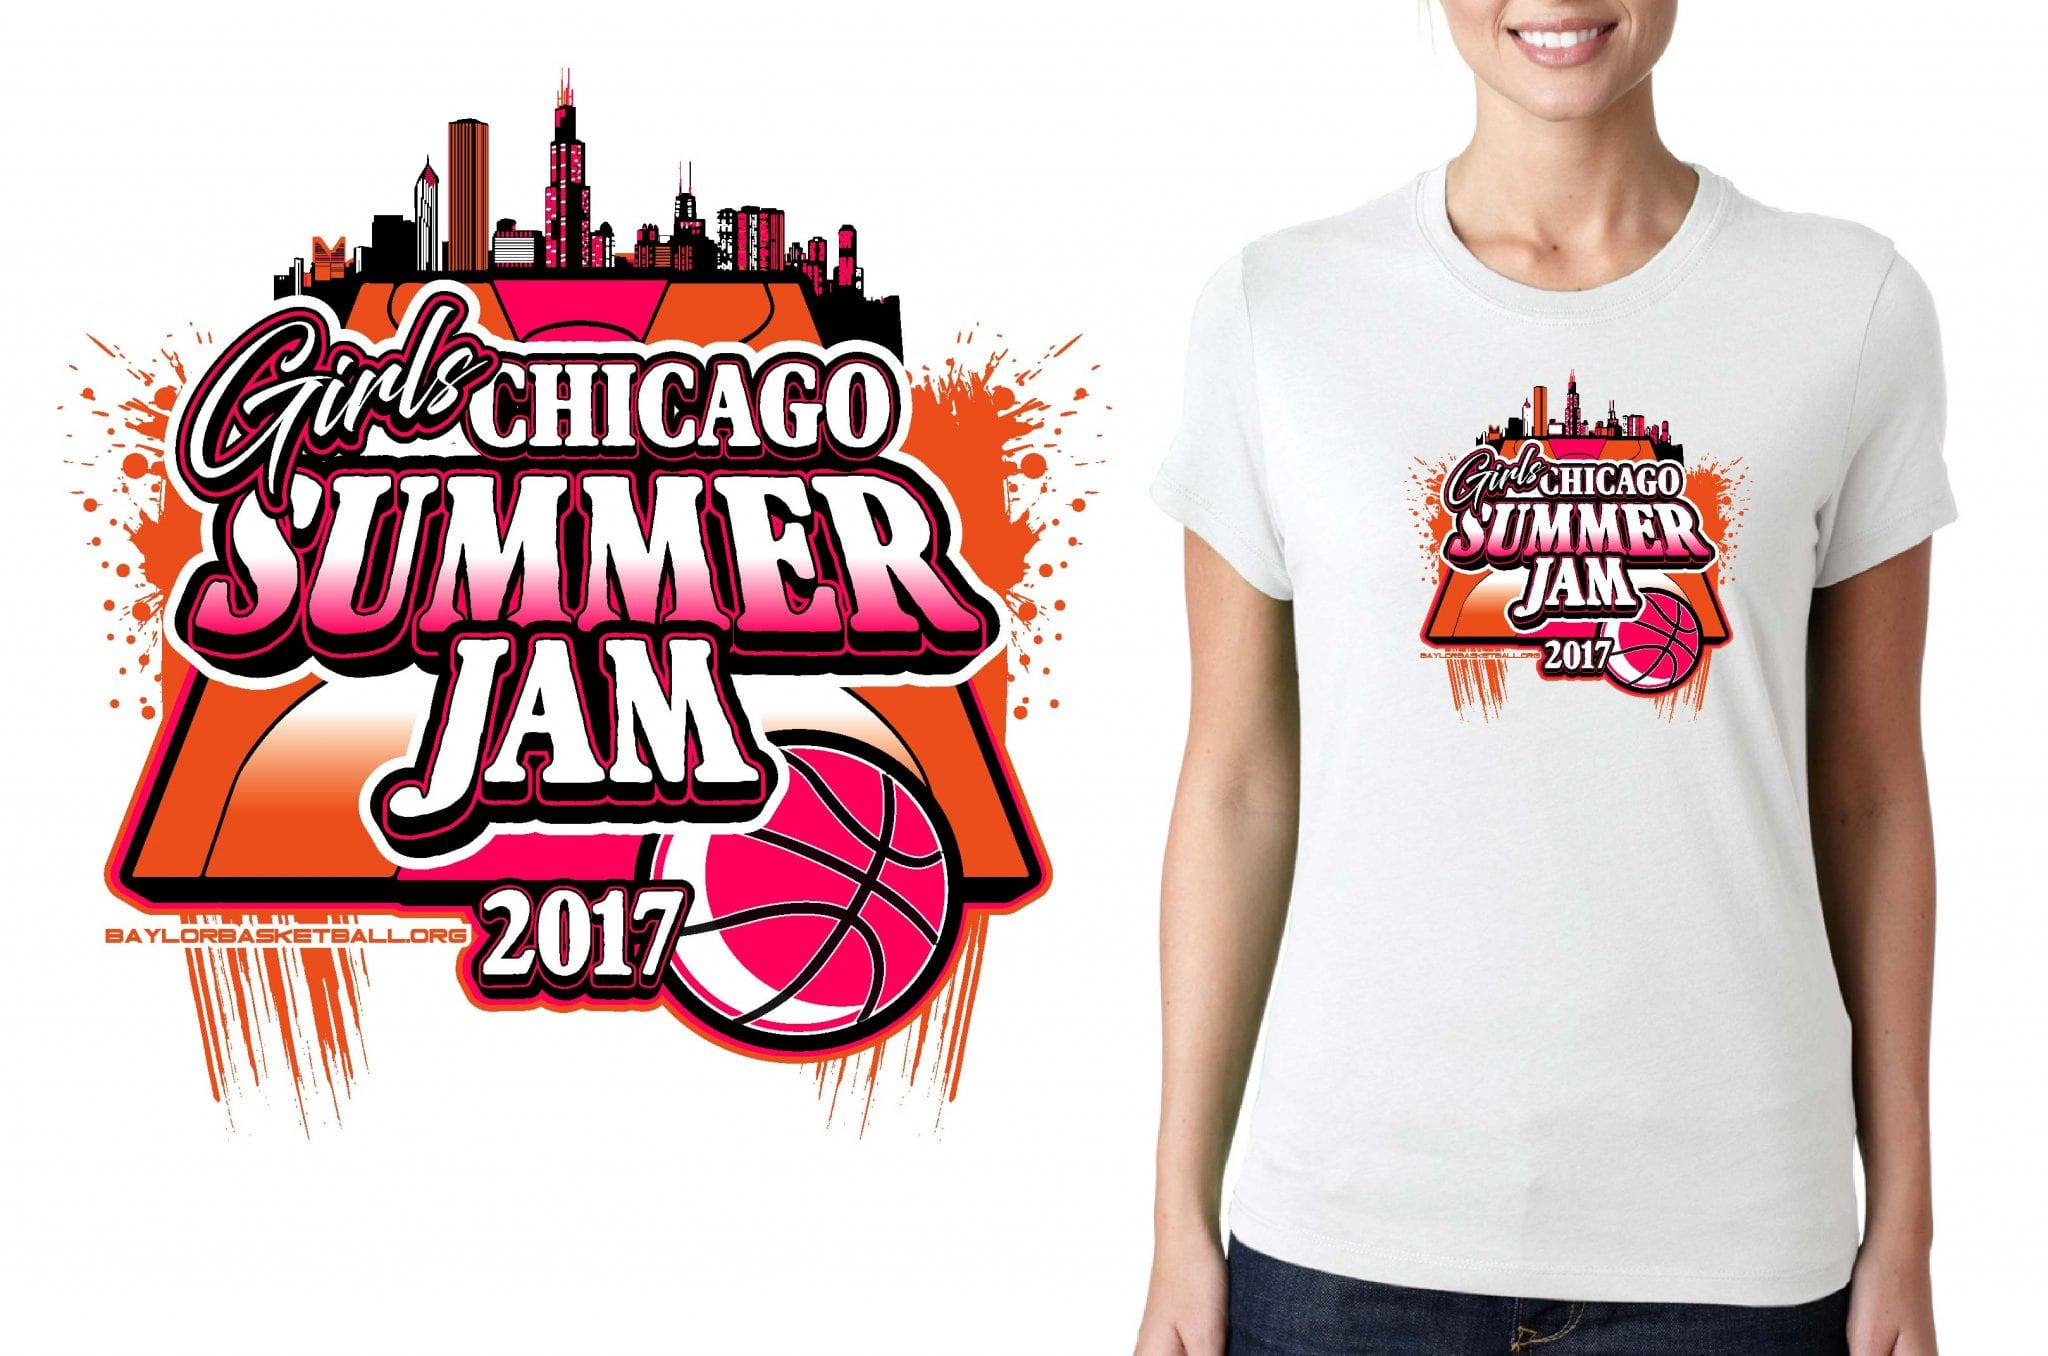 BASKETBALL TSHIRT LOGO DESIGN Girls-Chicago-Summer-Jam BY UrArtStudio